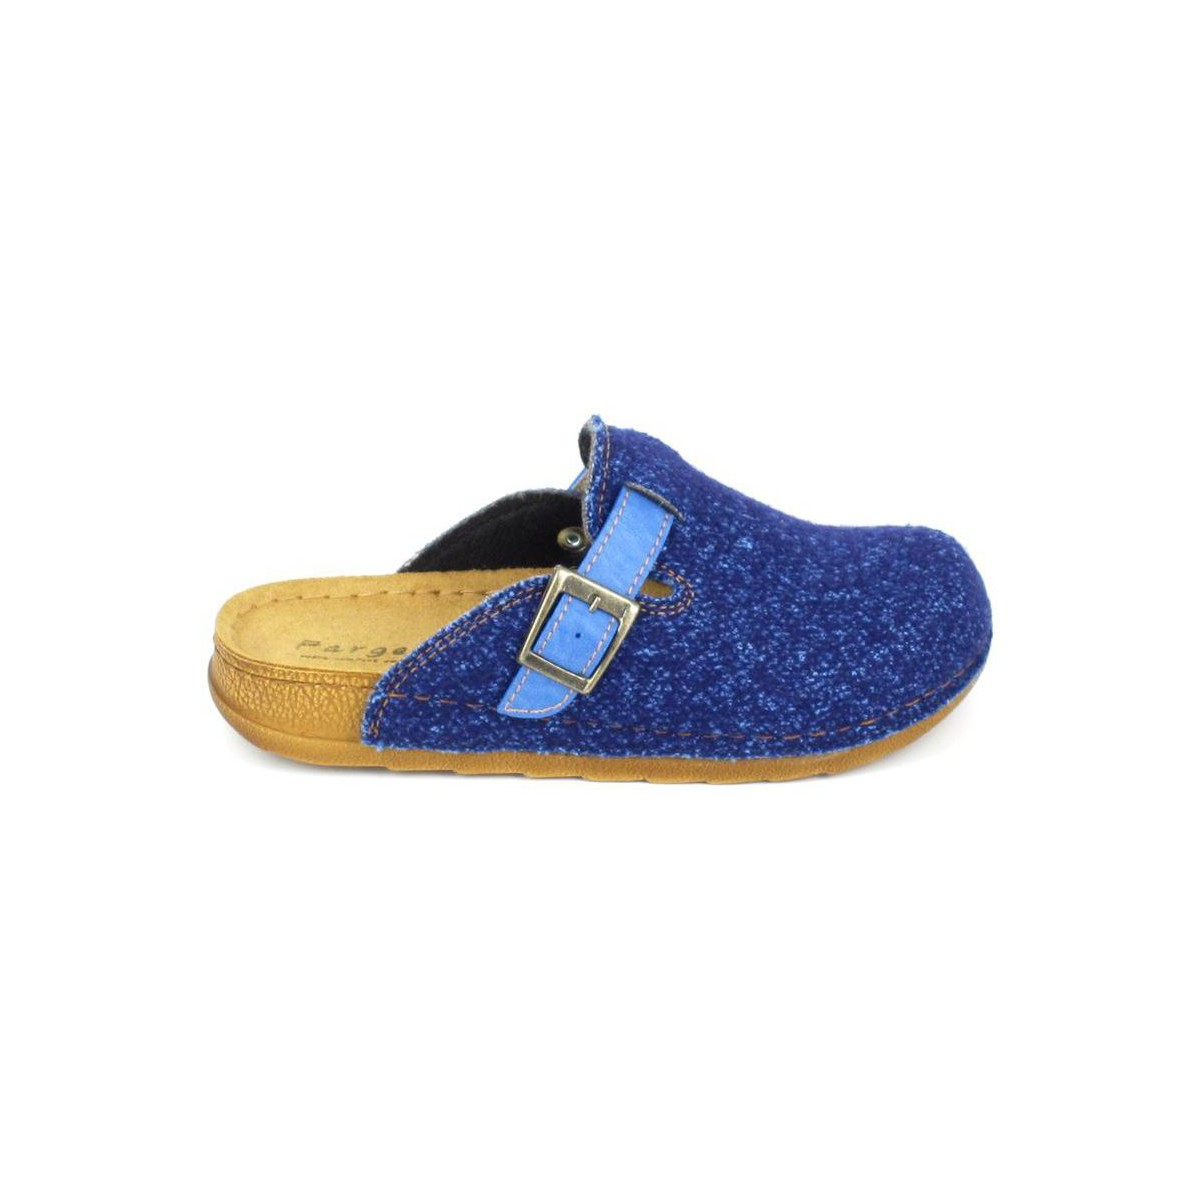 Usance Chaussons Chaussons Marine Usance Fargeot Fargeot HEDW2Y9I